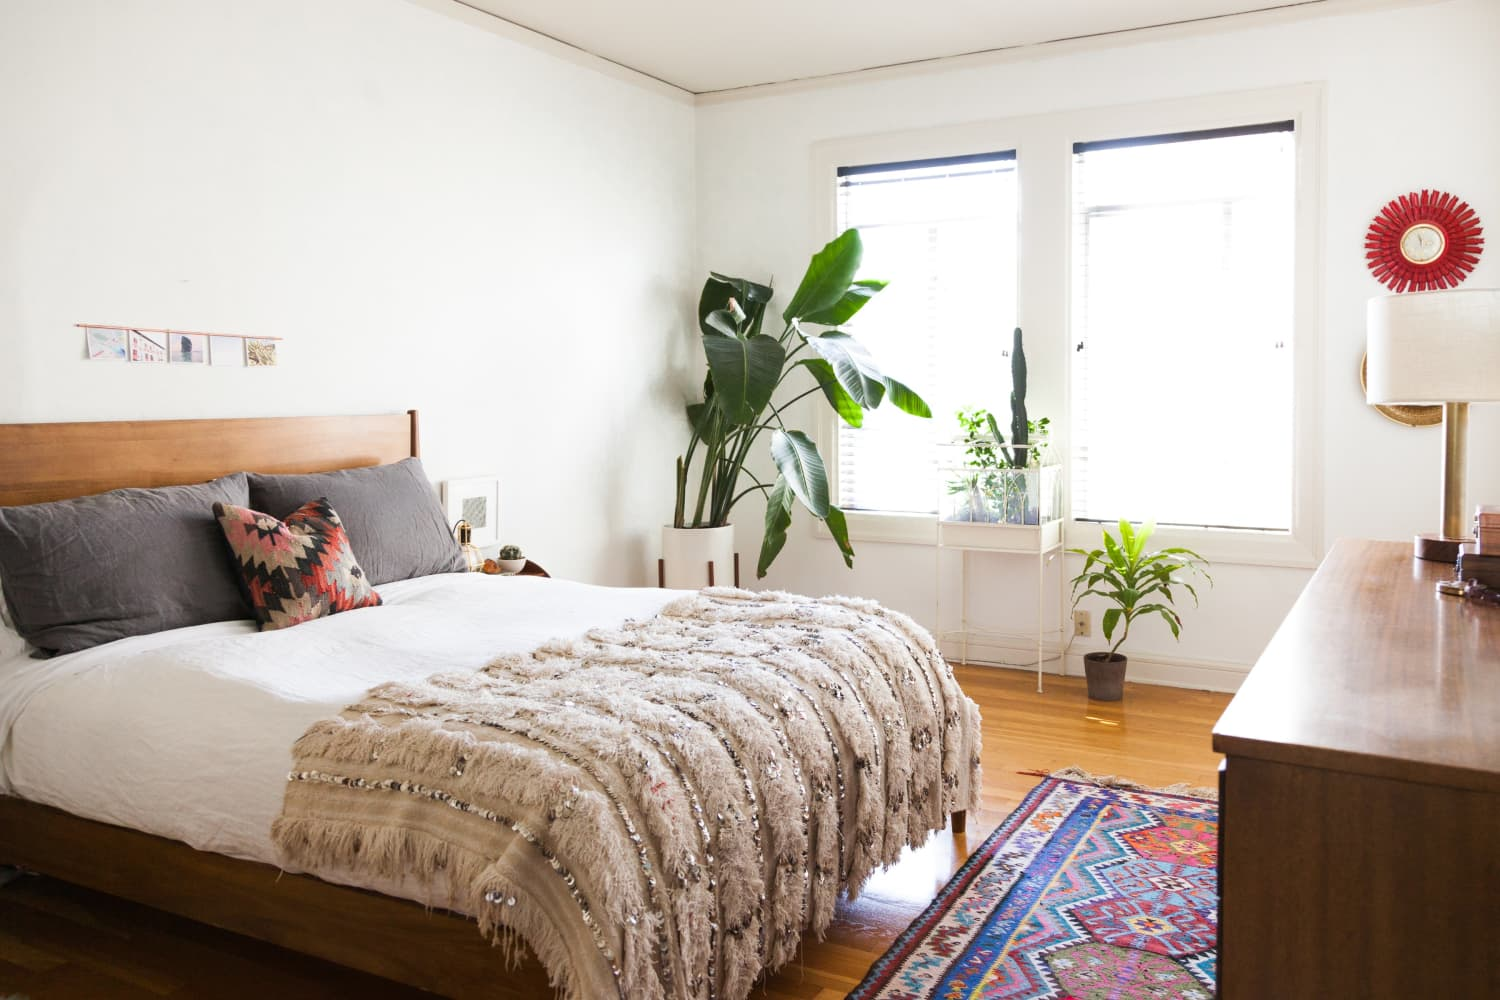 The Surprisingly Simple Bedroom Trend We've Been Seeing Everywhere